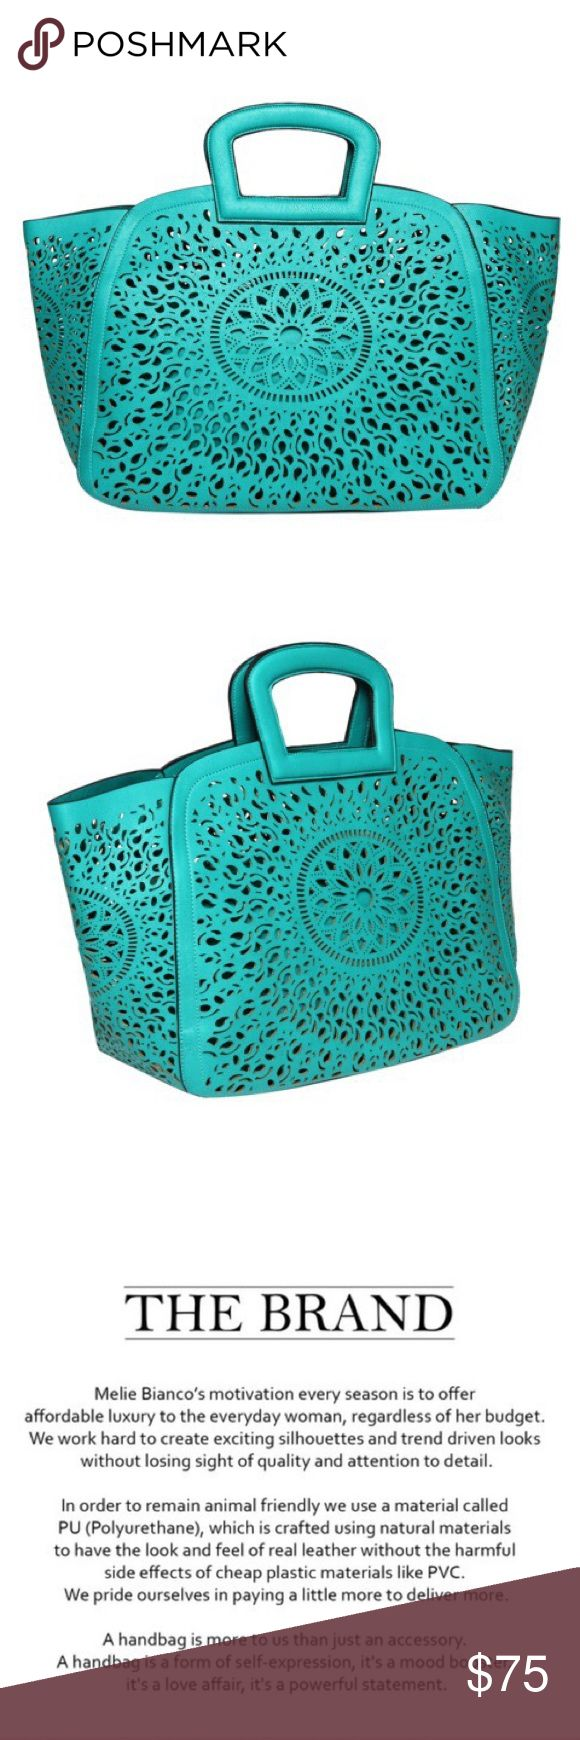 Melie Bianco Nancy Tote Melie Bianco turquoise Nancy Tote Spring / Summer 2017.  Premium Vegan Leather Extra Removable Pouch With Top Zipper Detachable Crossbody Strap Interior Slim Pockets Interior Zipper Pocket Dimensions 19'L x 6'W x 12.5'H Handle Drop 3' Color: Red PETA Approved Ethical Vegan Leather Melie Bianco Bags